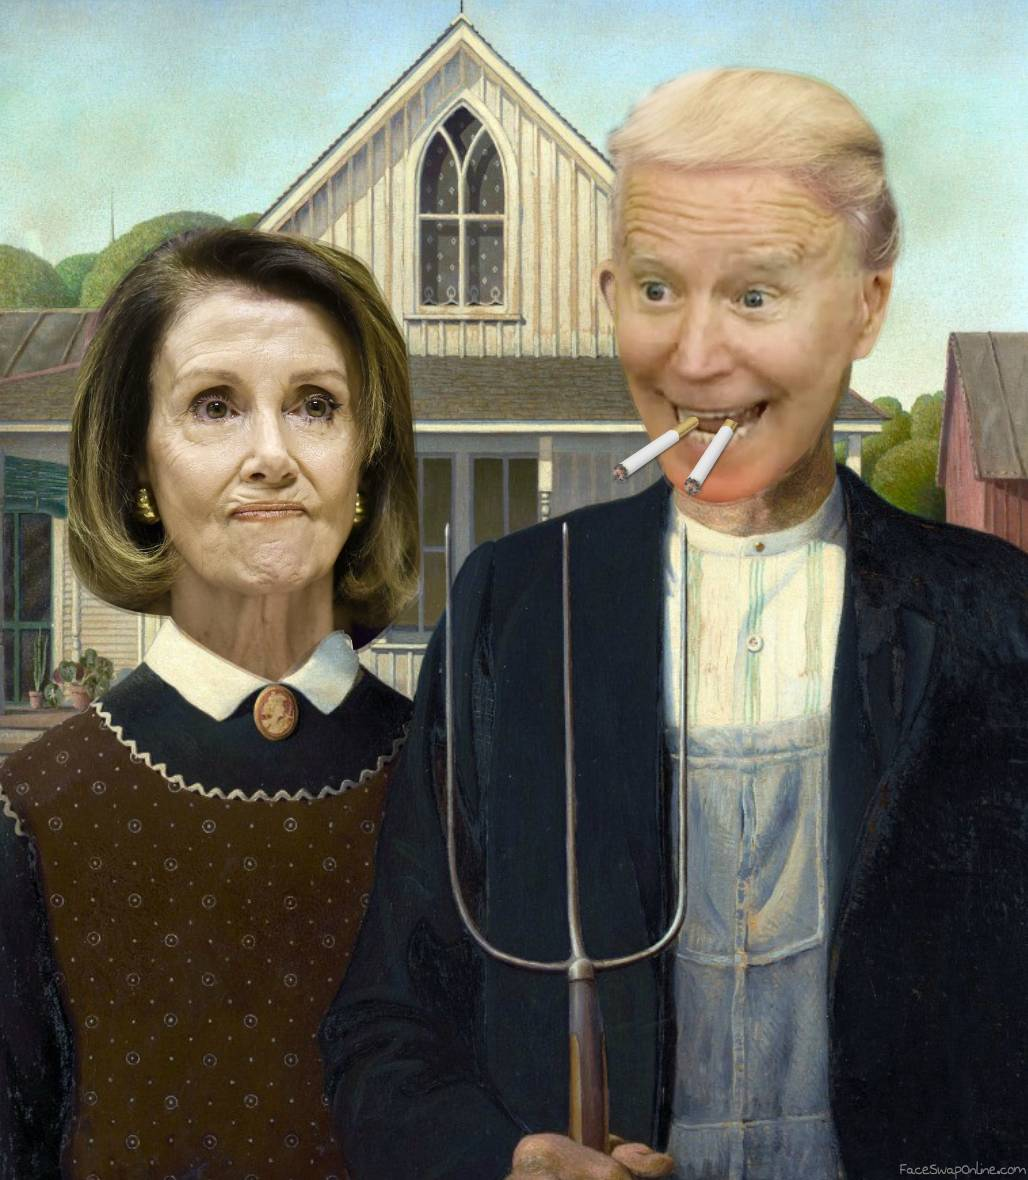 American Gothic appropriation